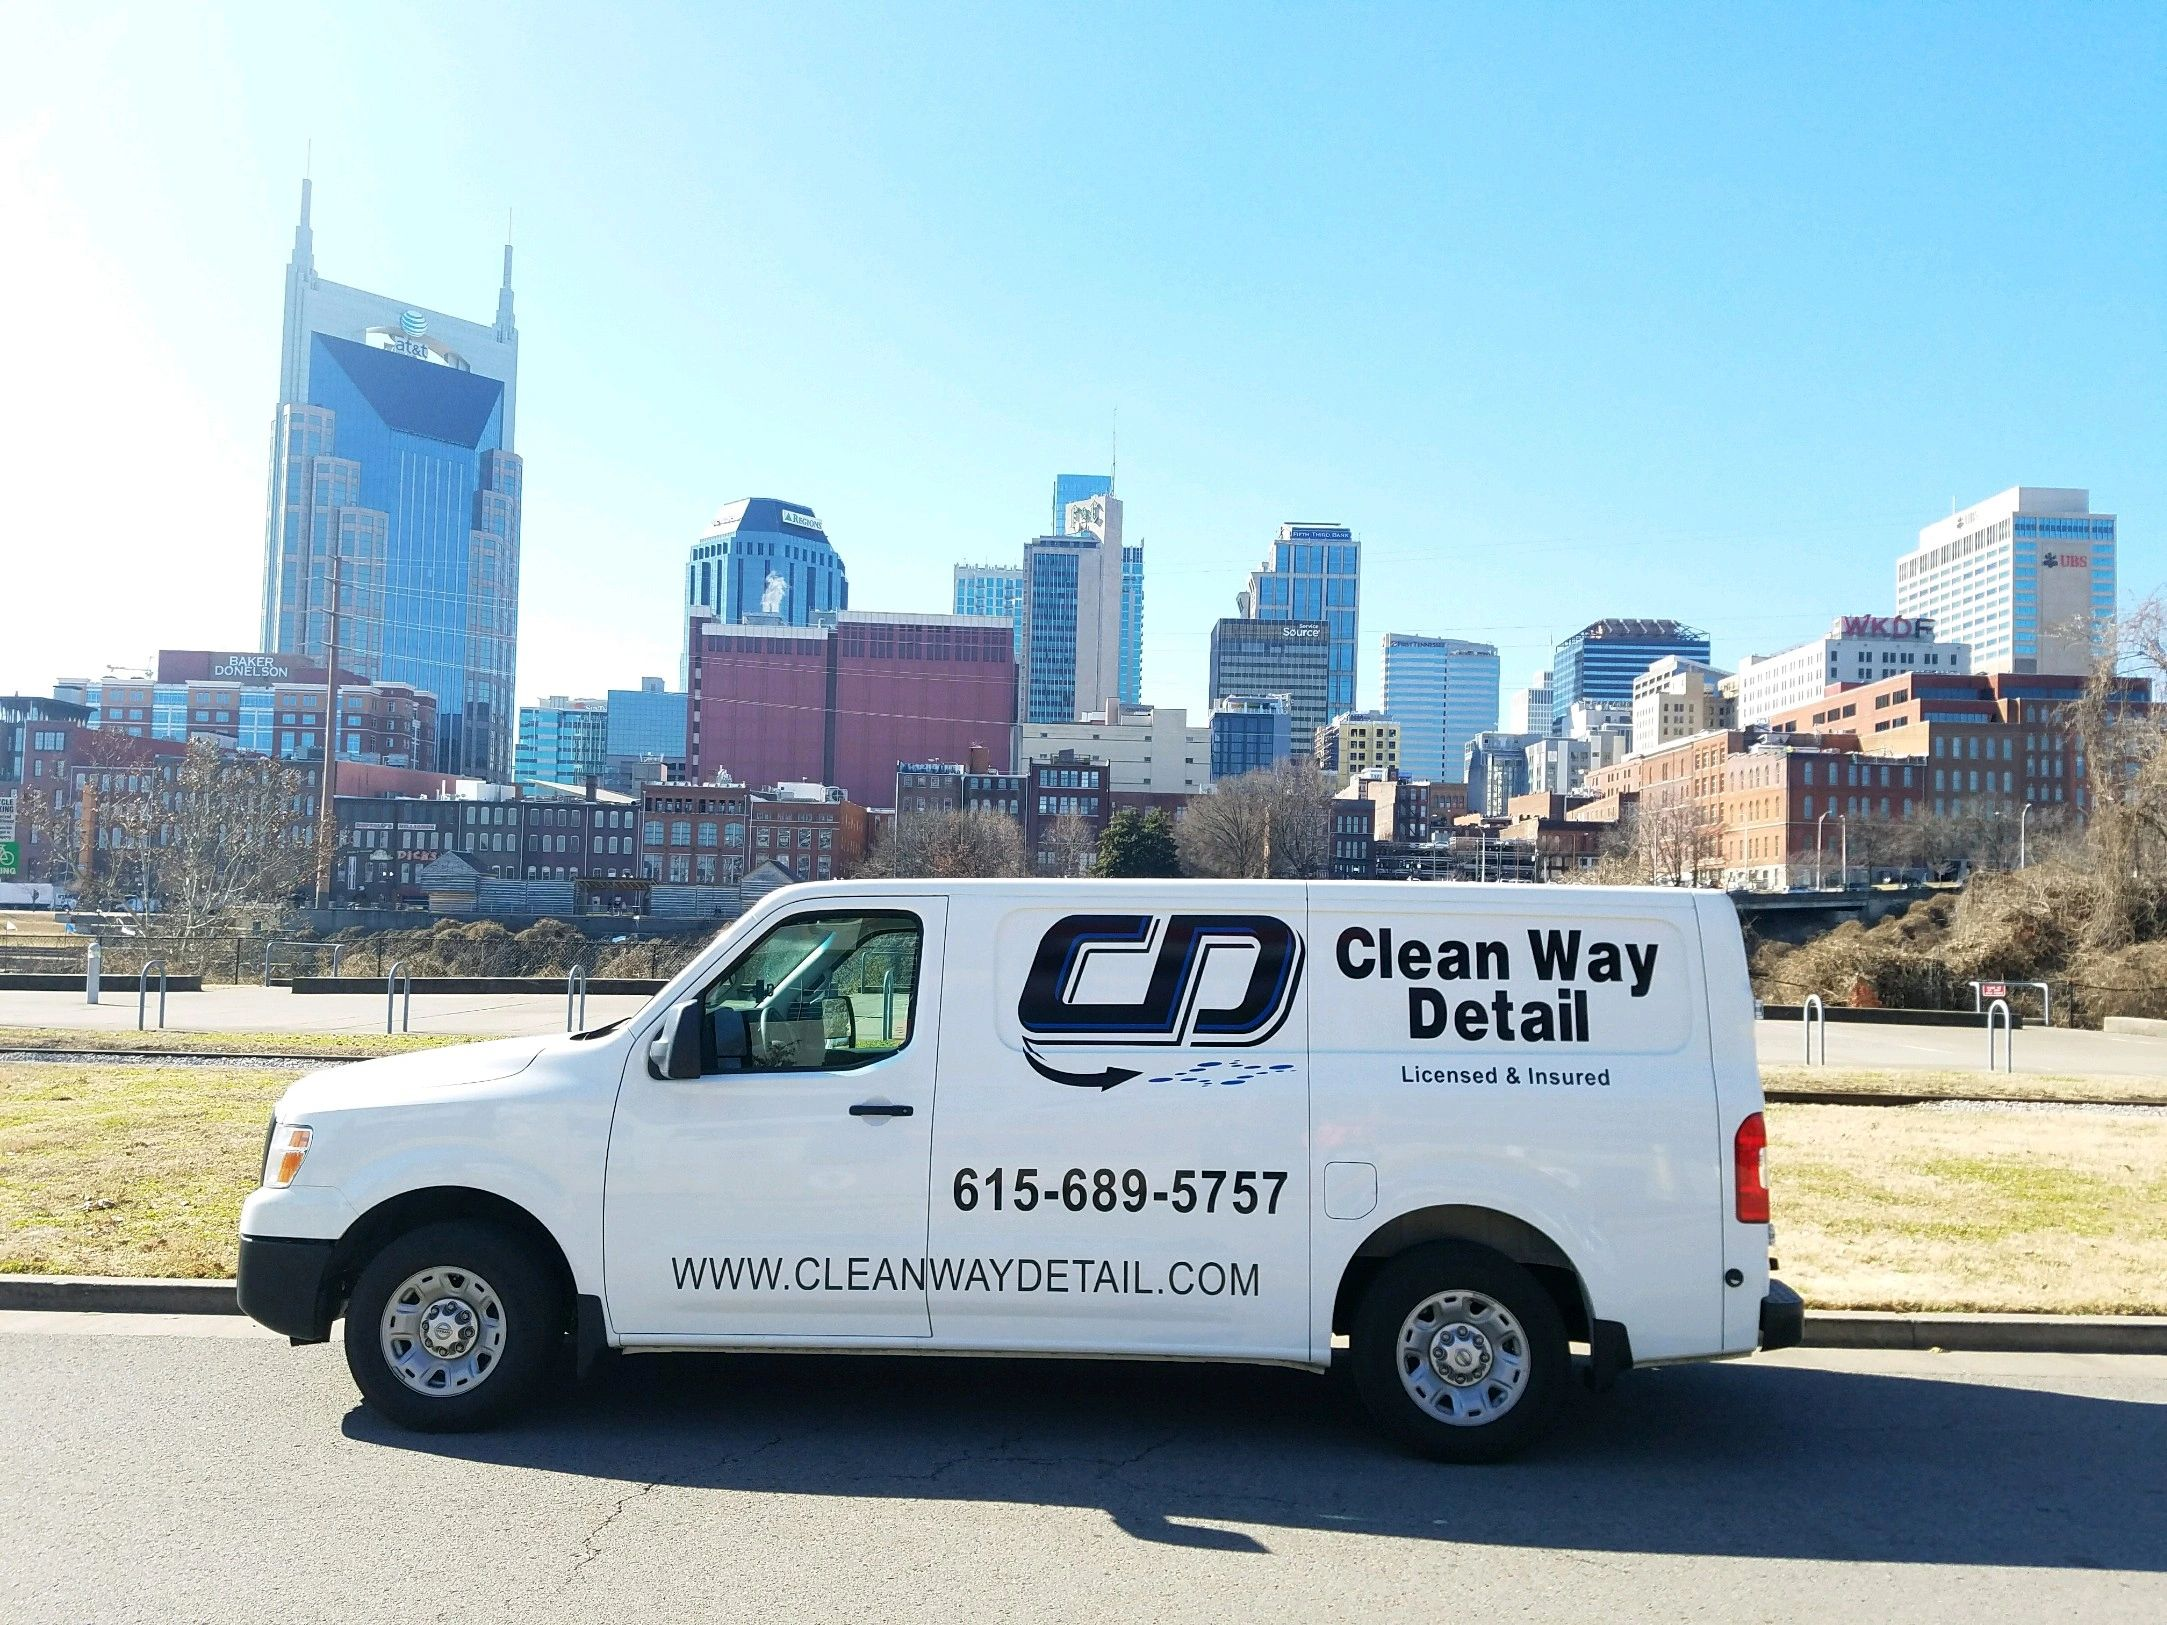 clean way detail auto detailing nashville tennessee clean way detail. Black Bedroom Furniture Sets. Home Design Ideas